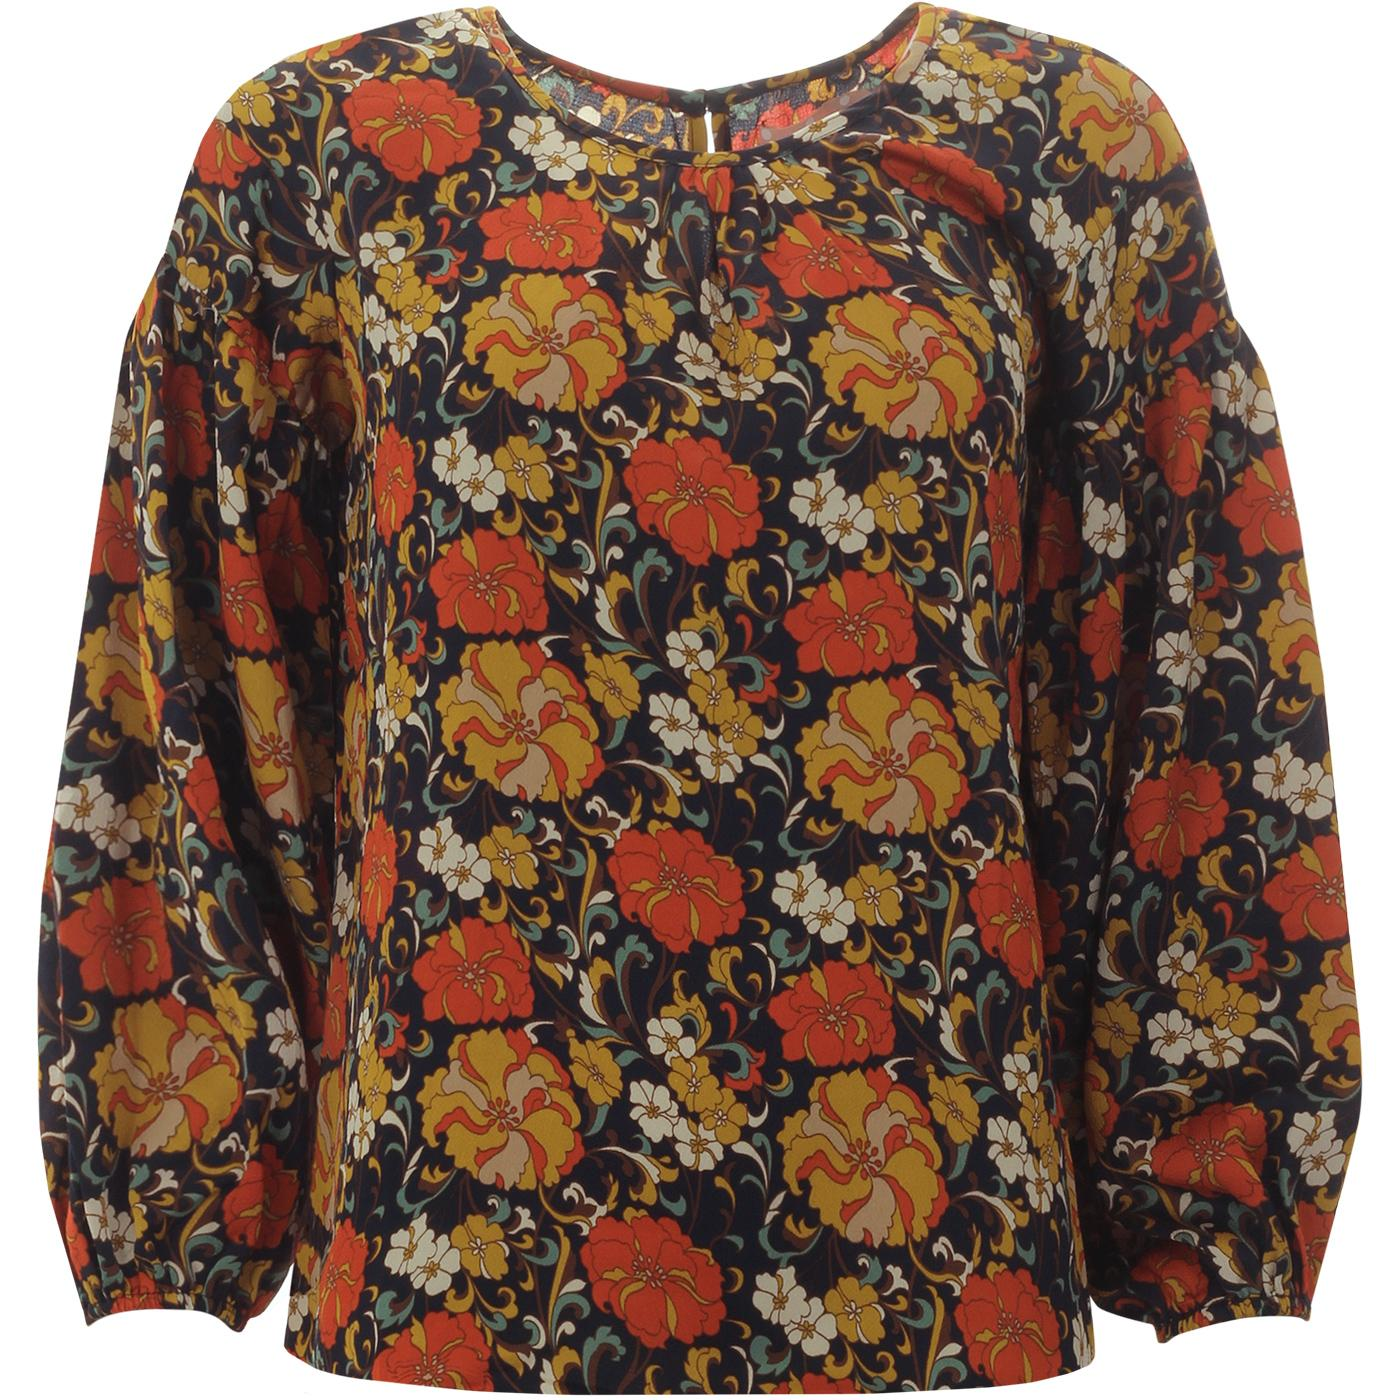 Seasons TRAFFIC PEOPLE Oversized Floral Top NAVY